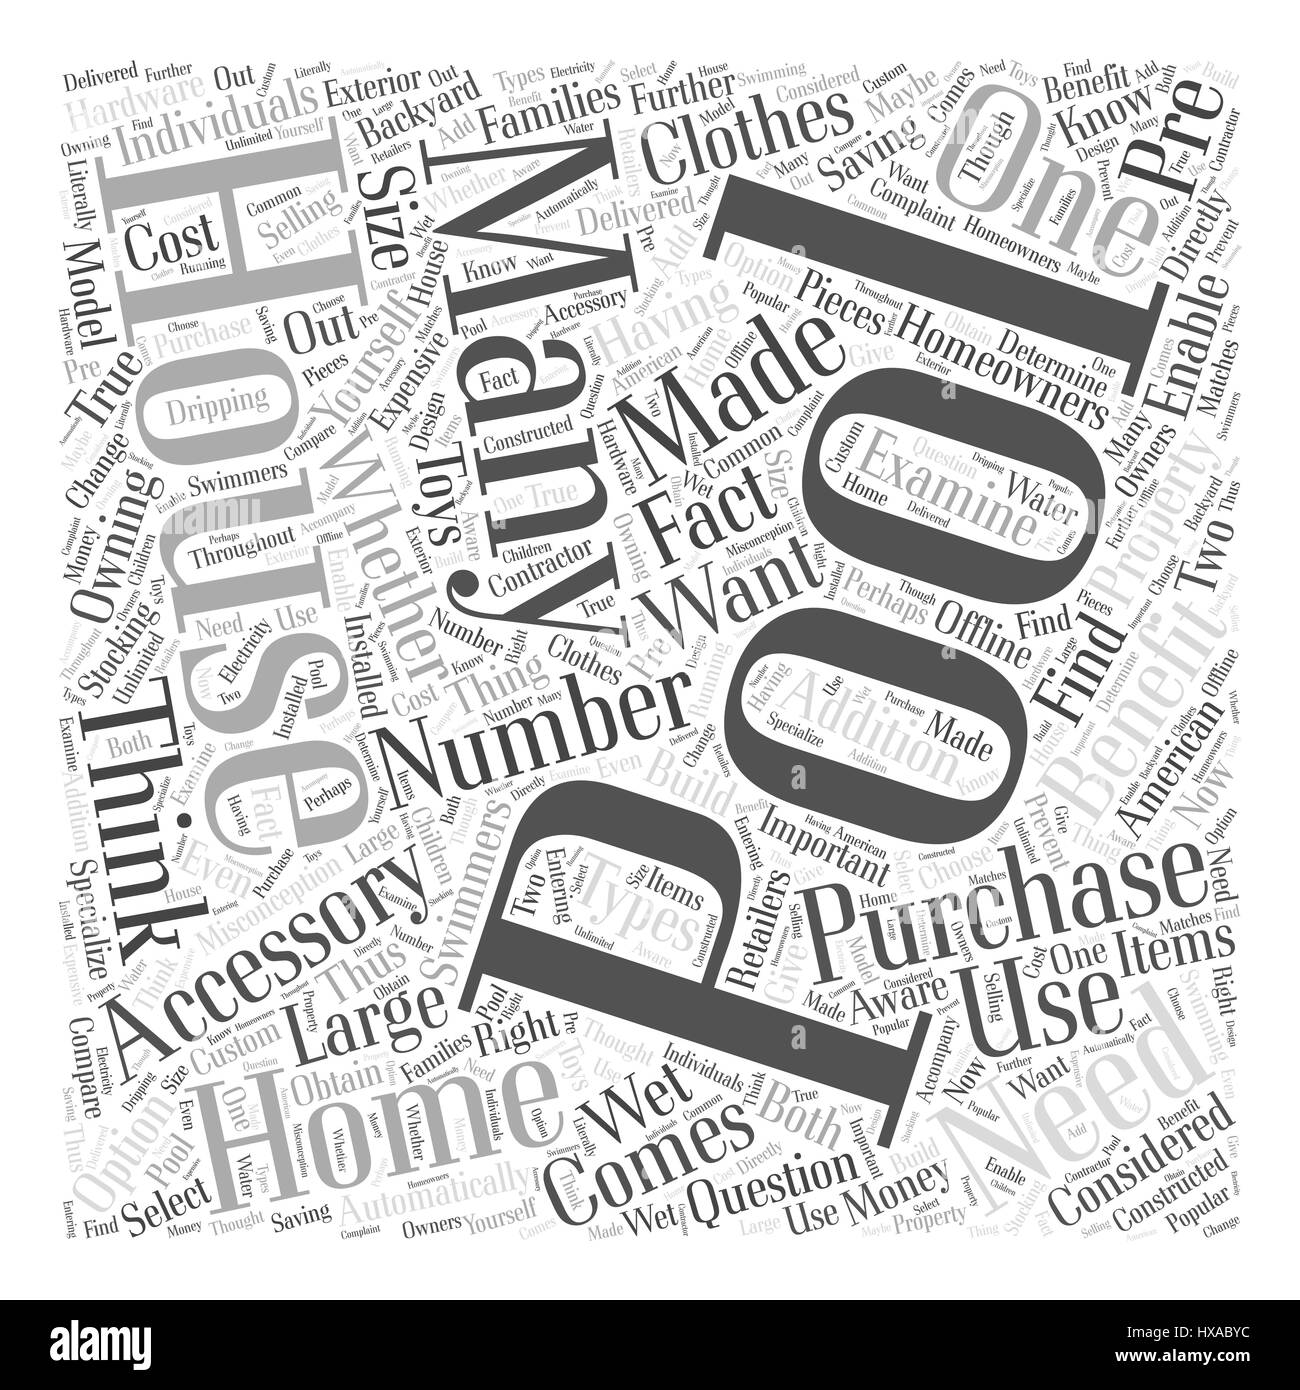 Do You Need a Pool House Word Cloud Concept Stock Vector Art ...